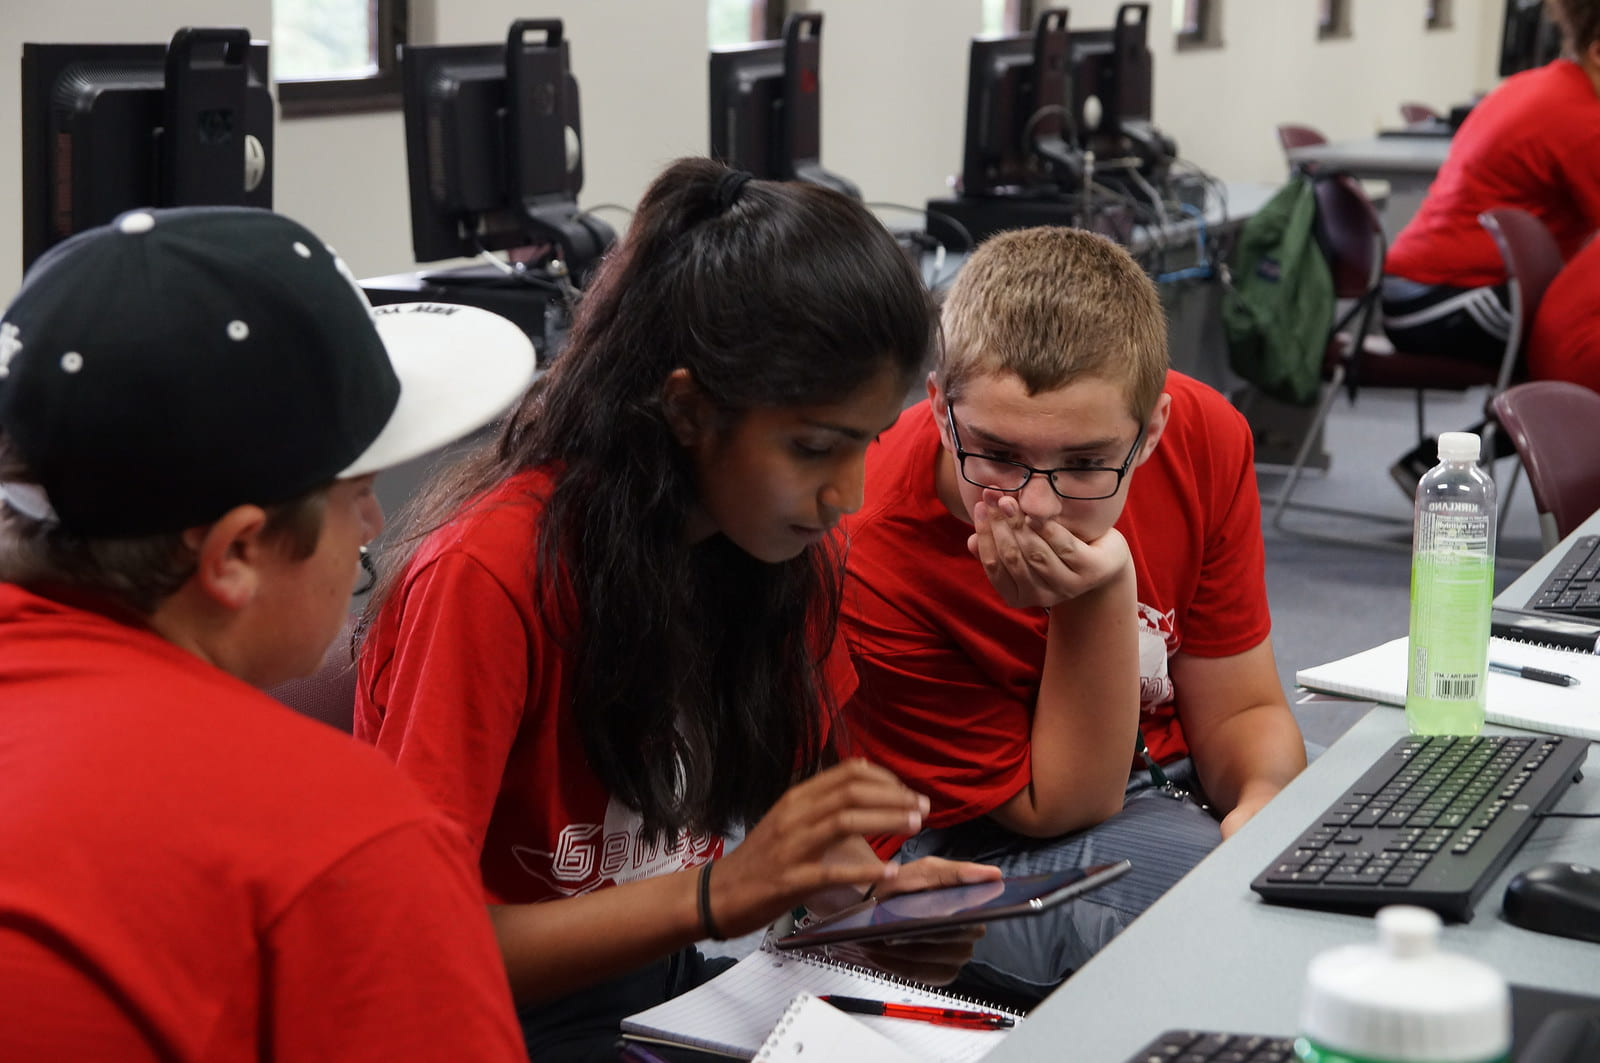 GenCyber campers using a mobile device